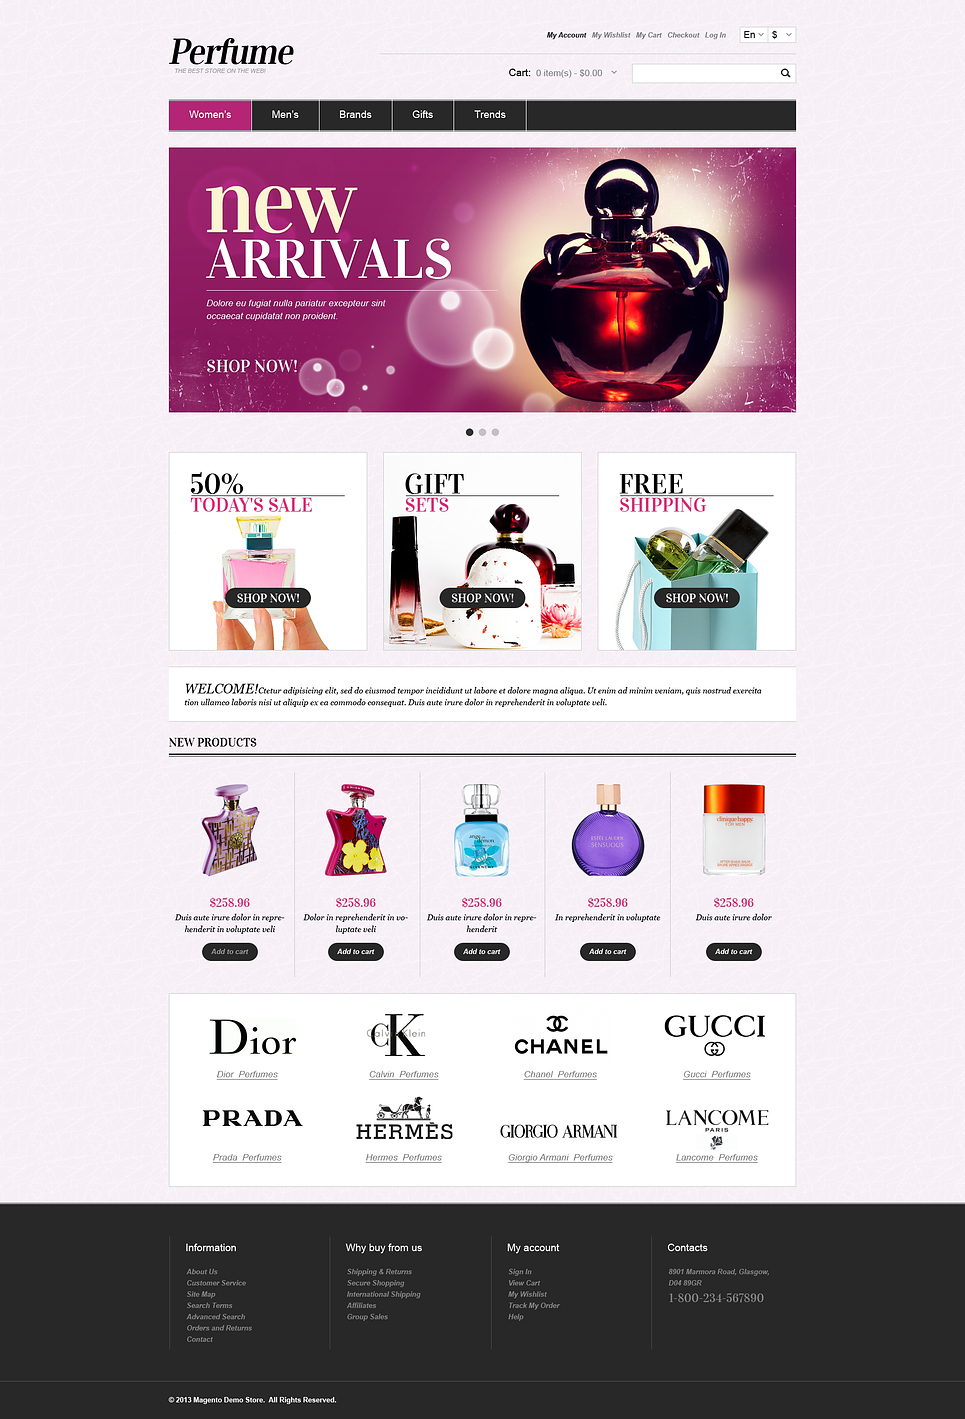 Best Perfumes Magento Theme - Free construction invoice template gucci outlet online store authentic